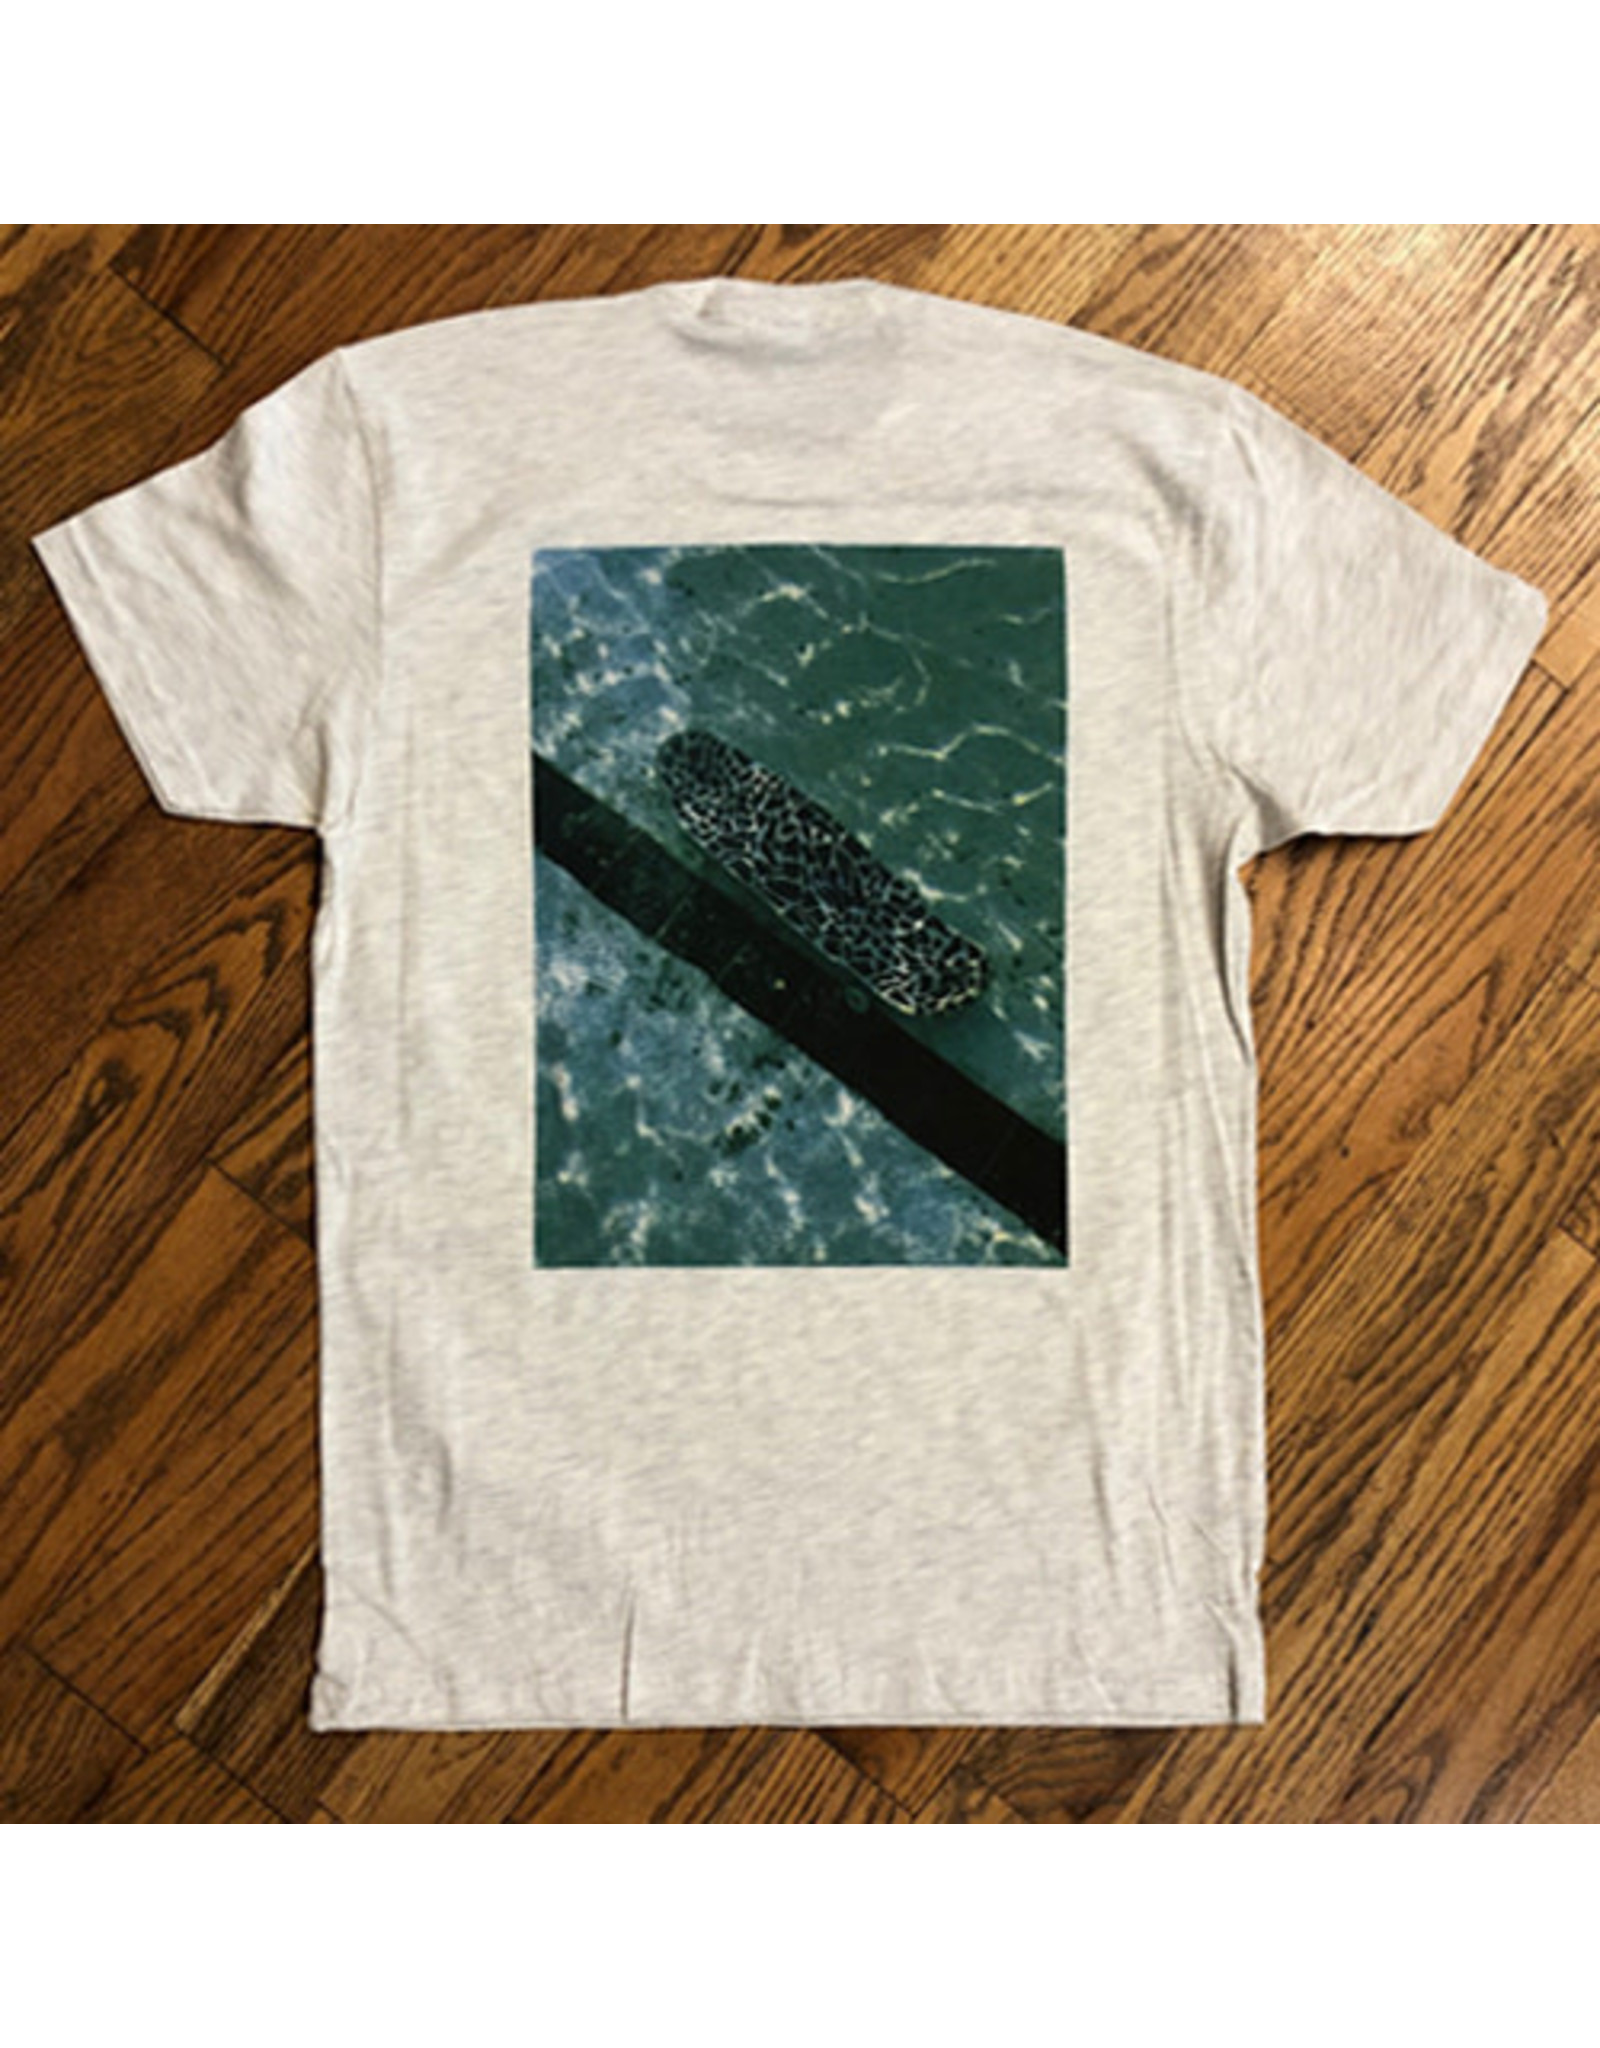 Southside Southside Tee Submerged Photo on Oatmeal